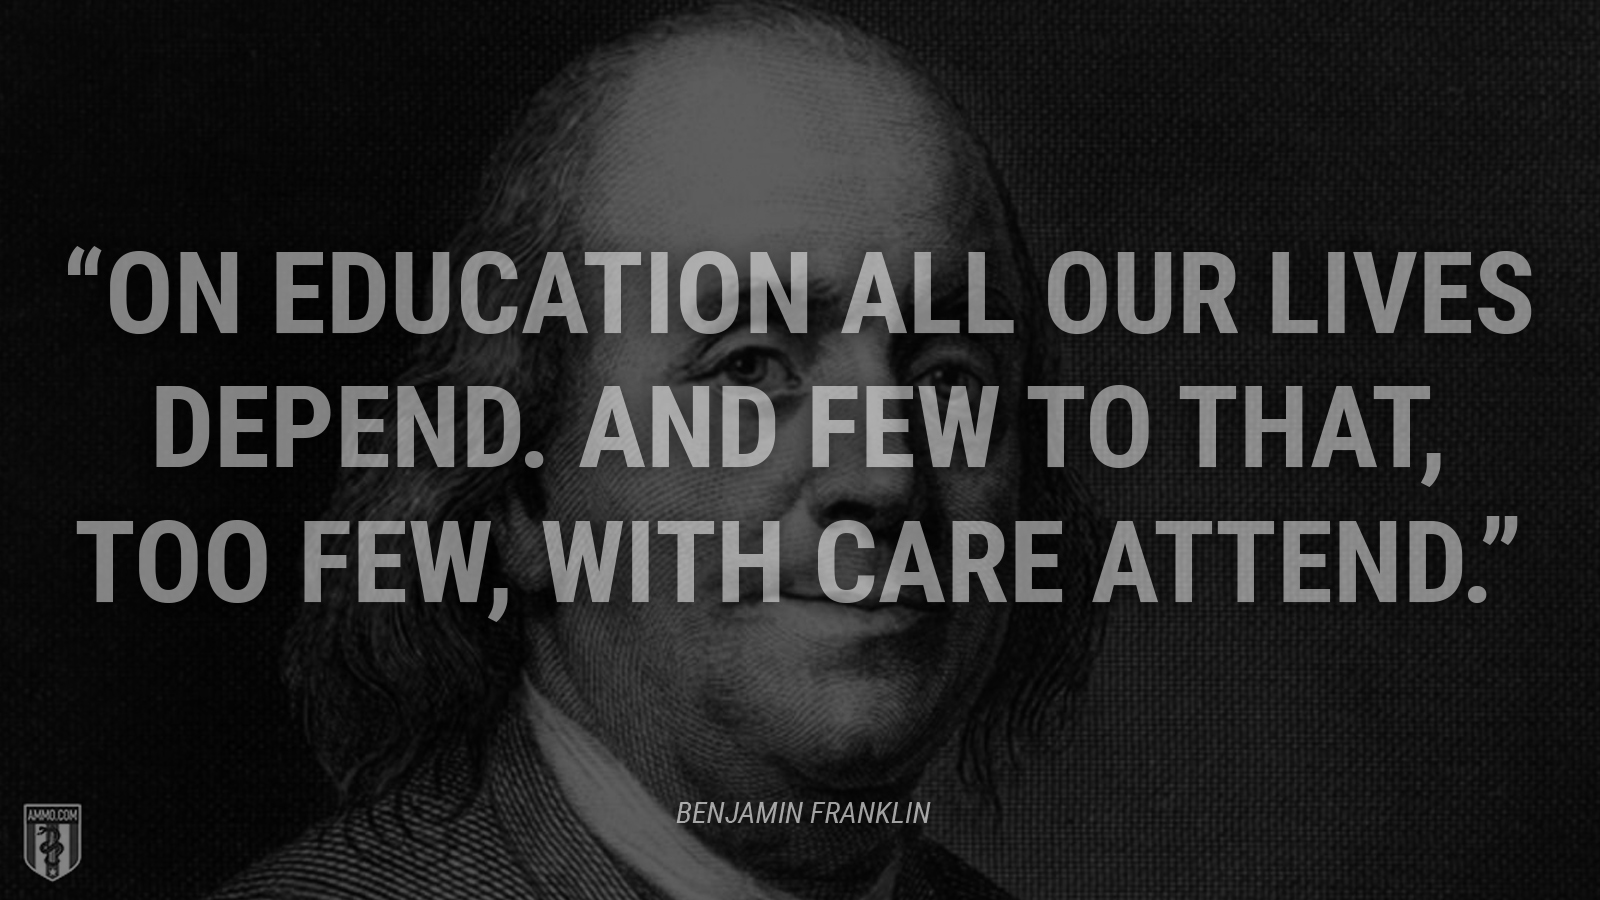 """On education all our lives depend. And few to that, too few, with care attend."" - Ben Franklin"